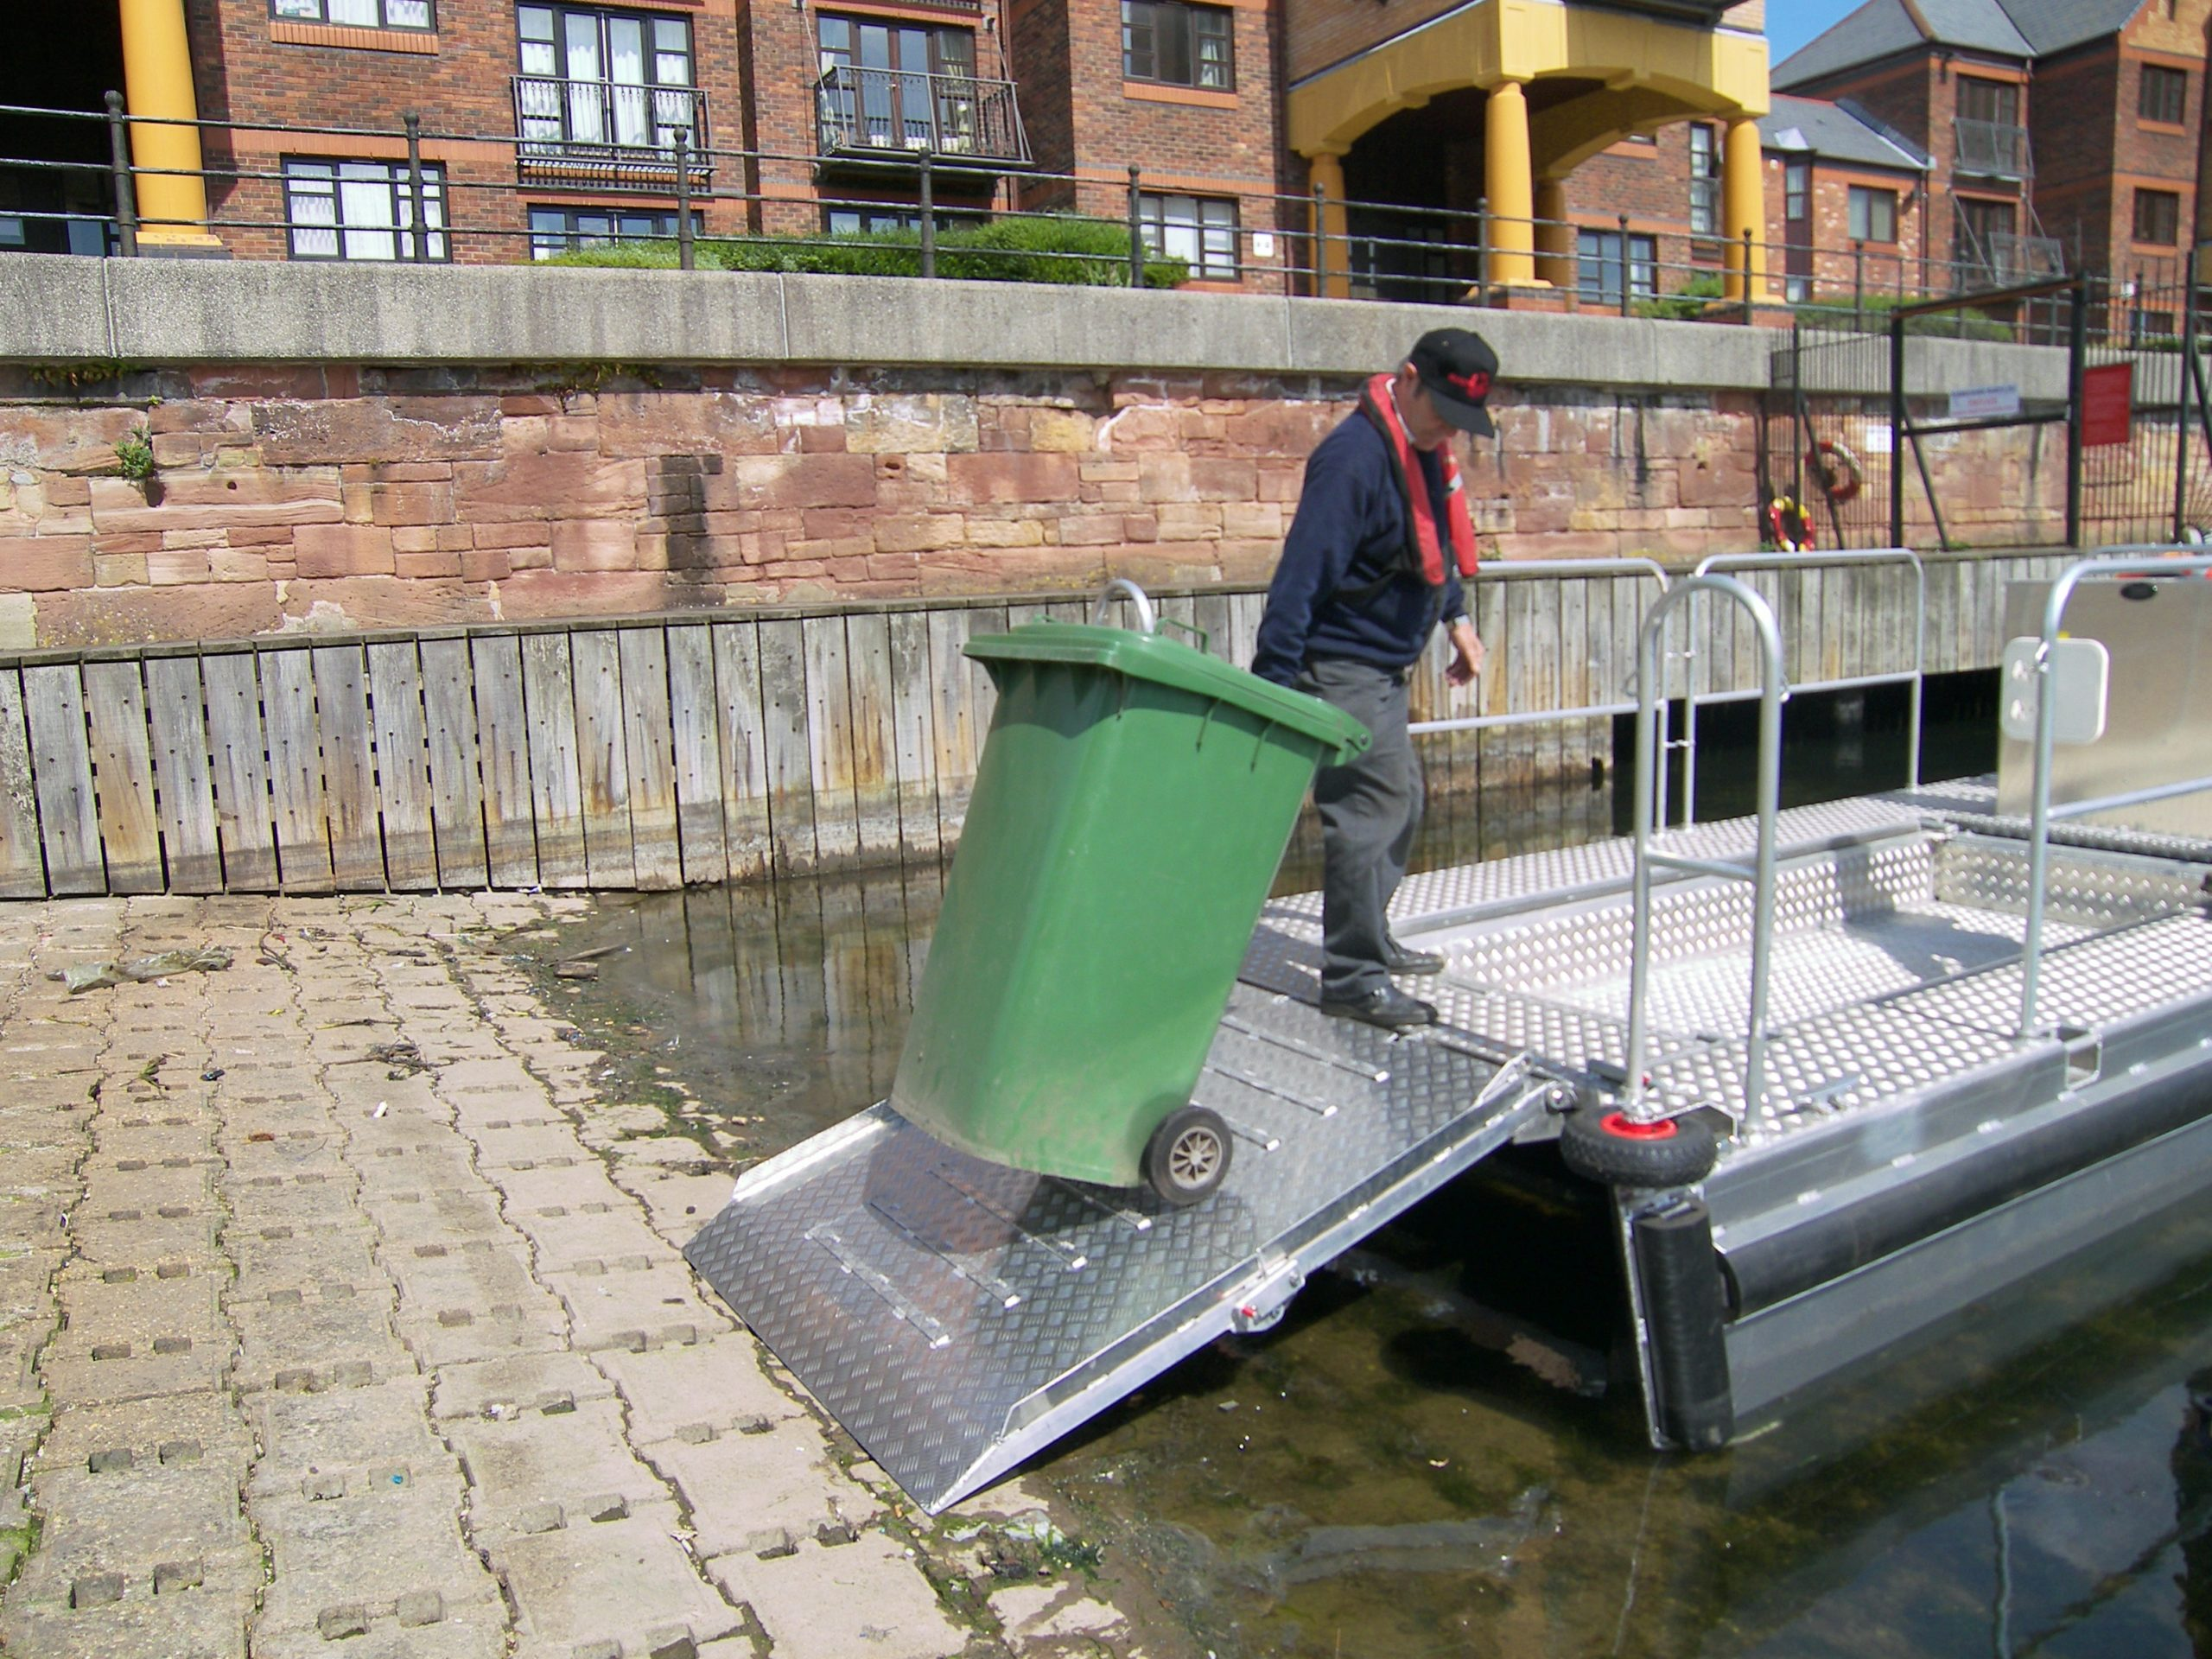 Pontoon Workboat Trash skimmer boat, litter collection boat, marine debris recovery boat